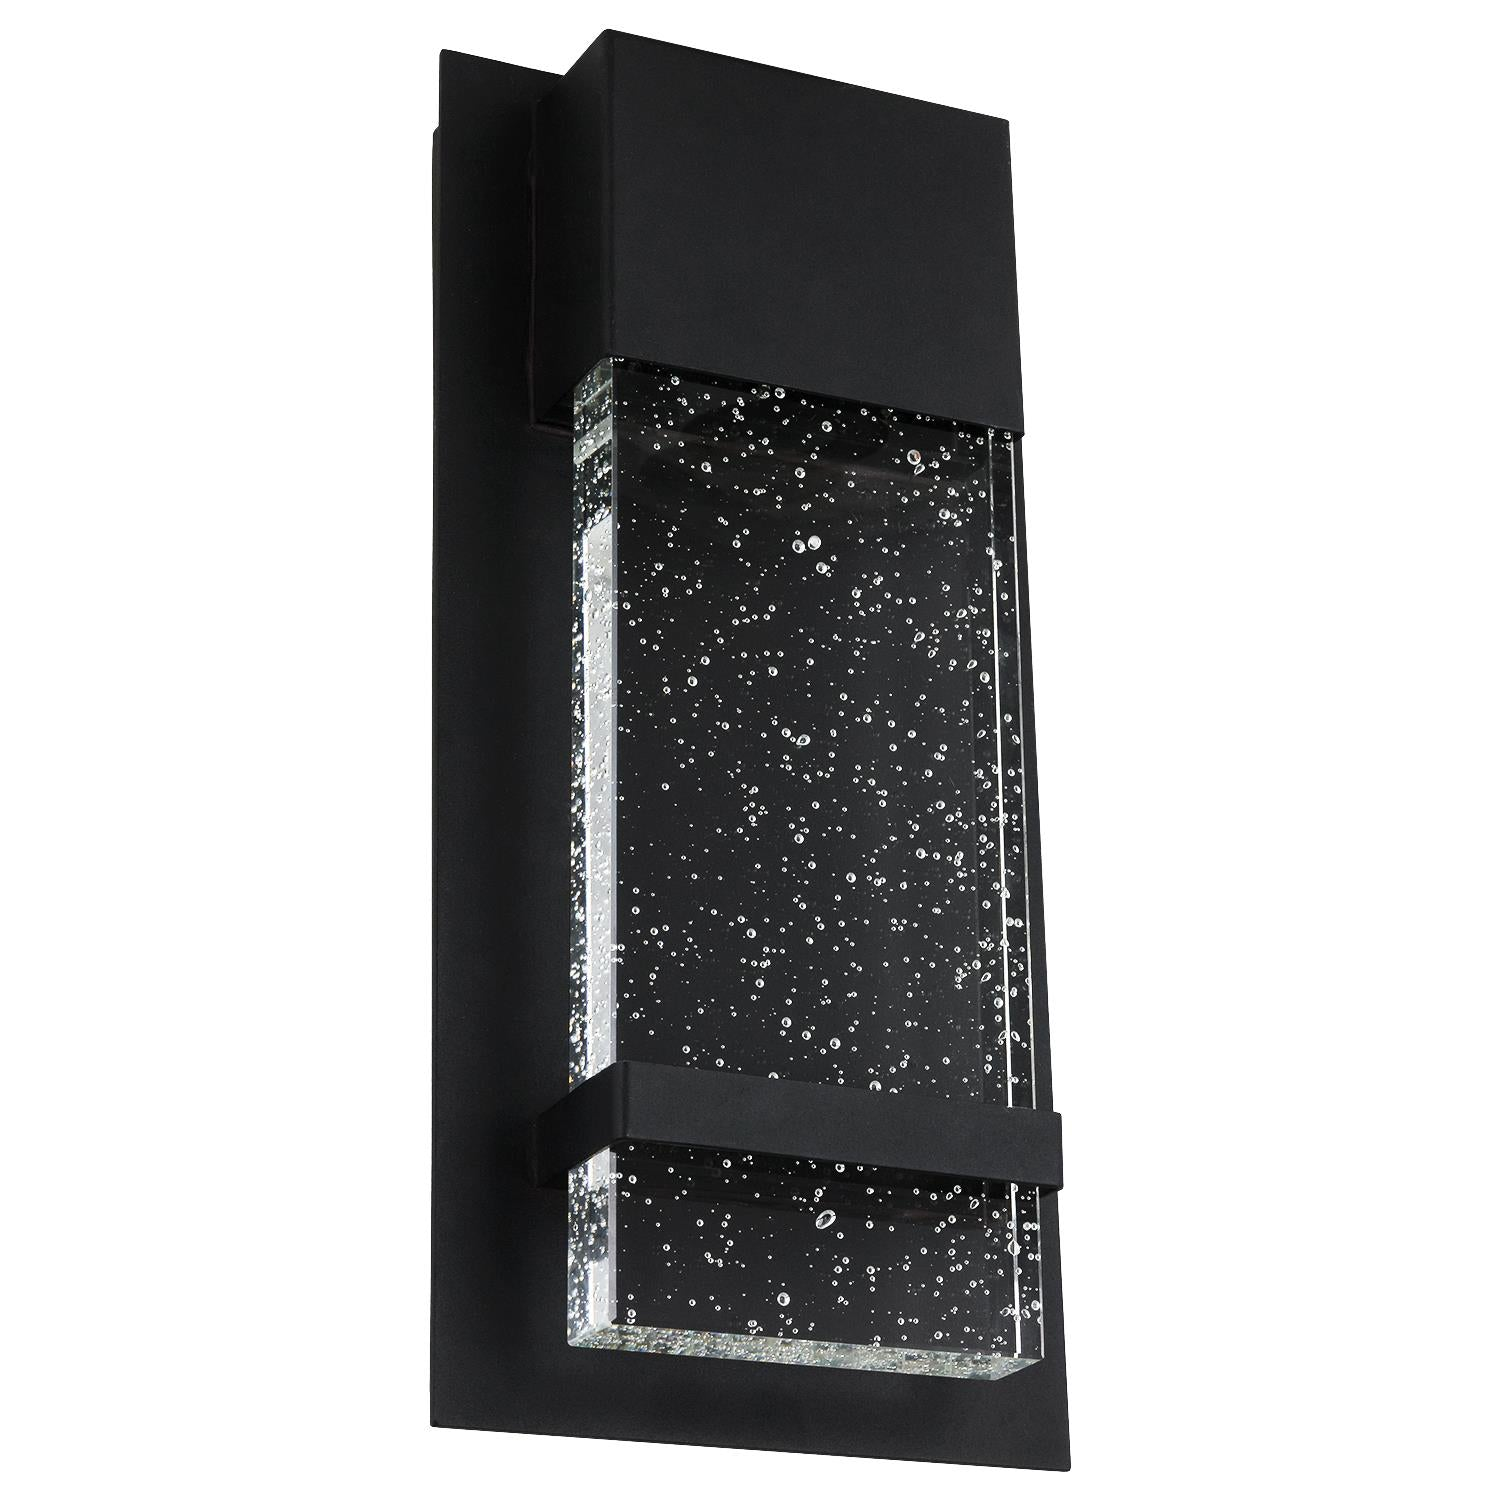 SUNLITE 12W 14in. Integrated LED Outdoor Wall Sconce 3000K Warm White